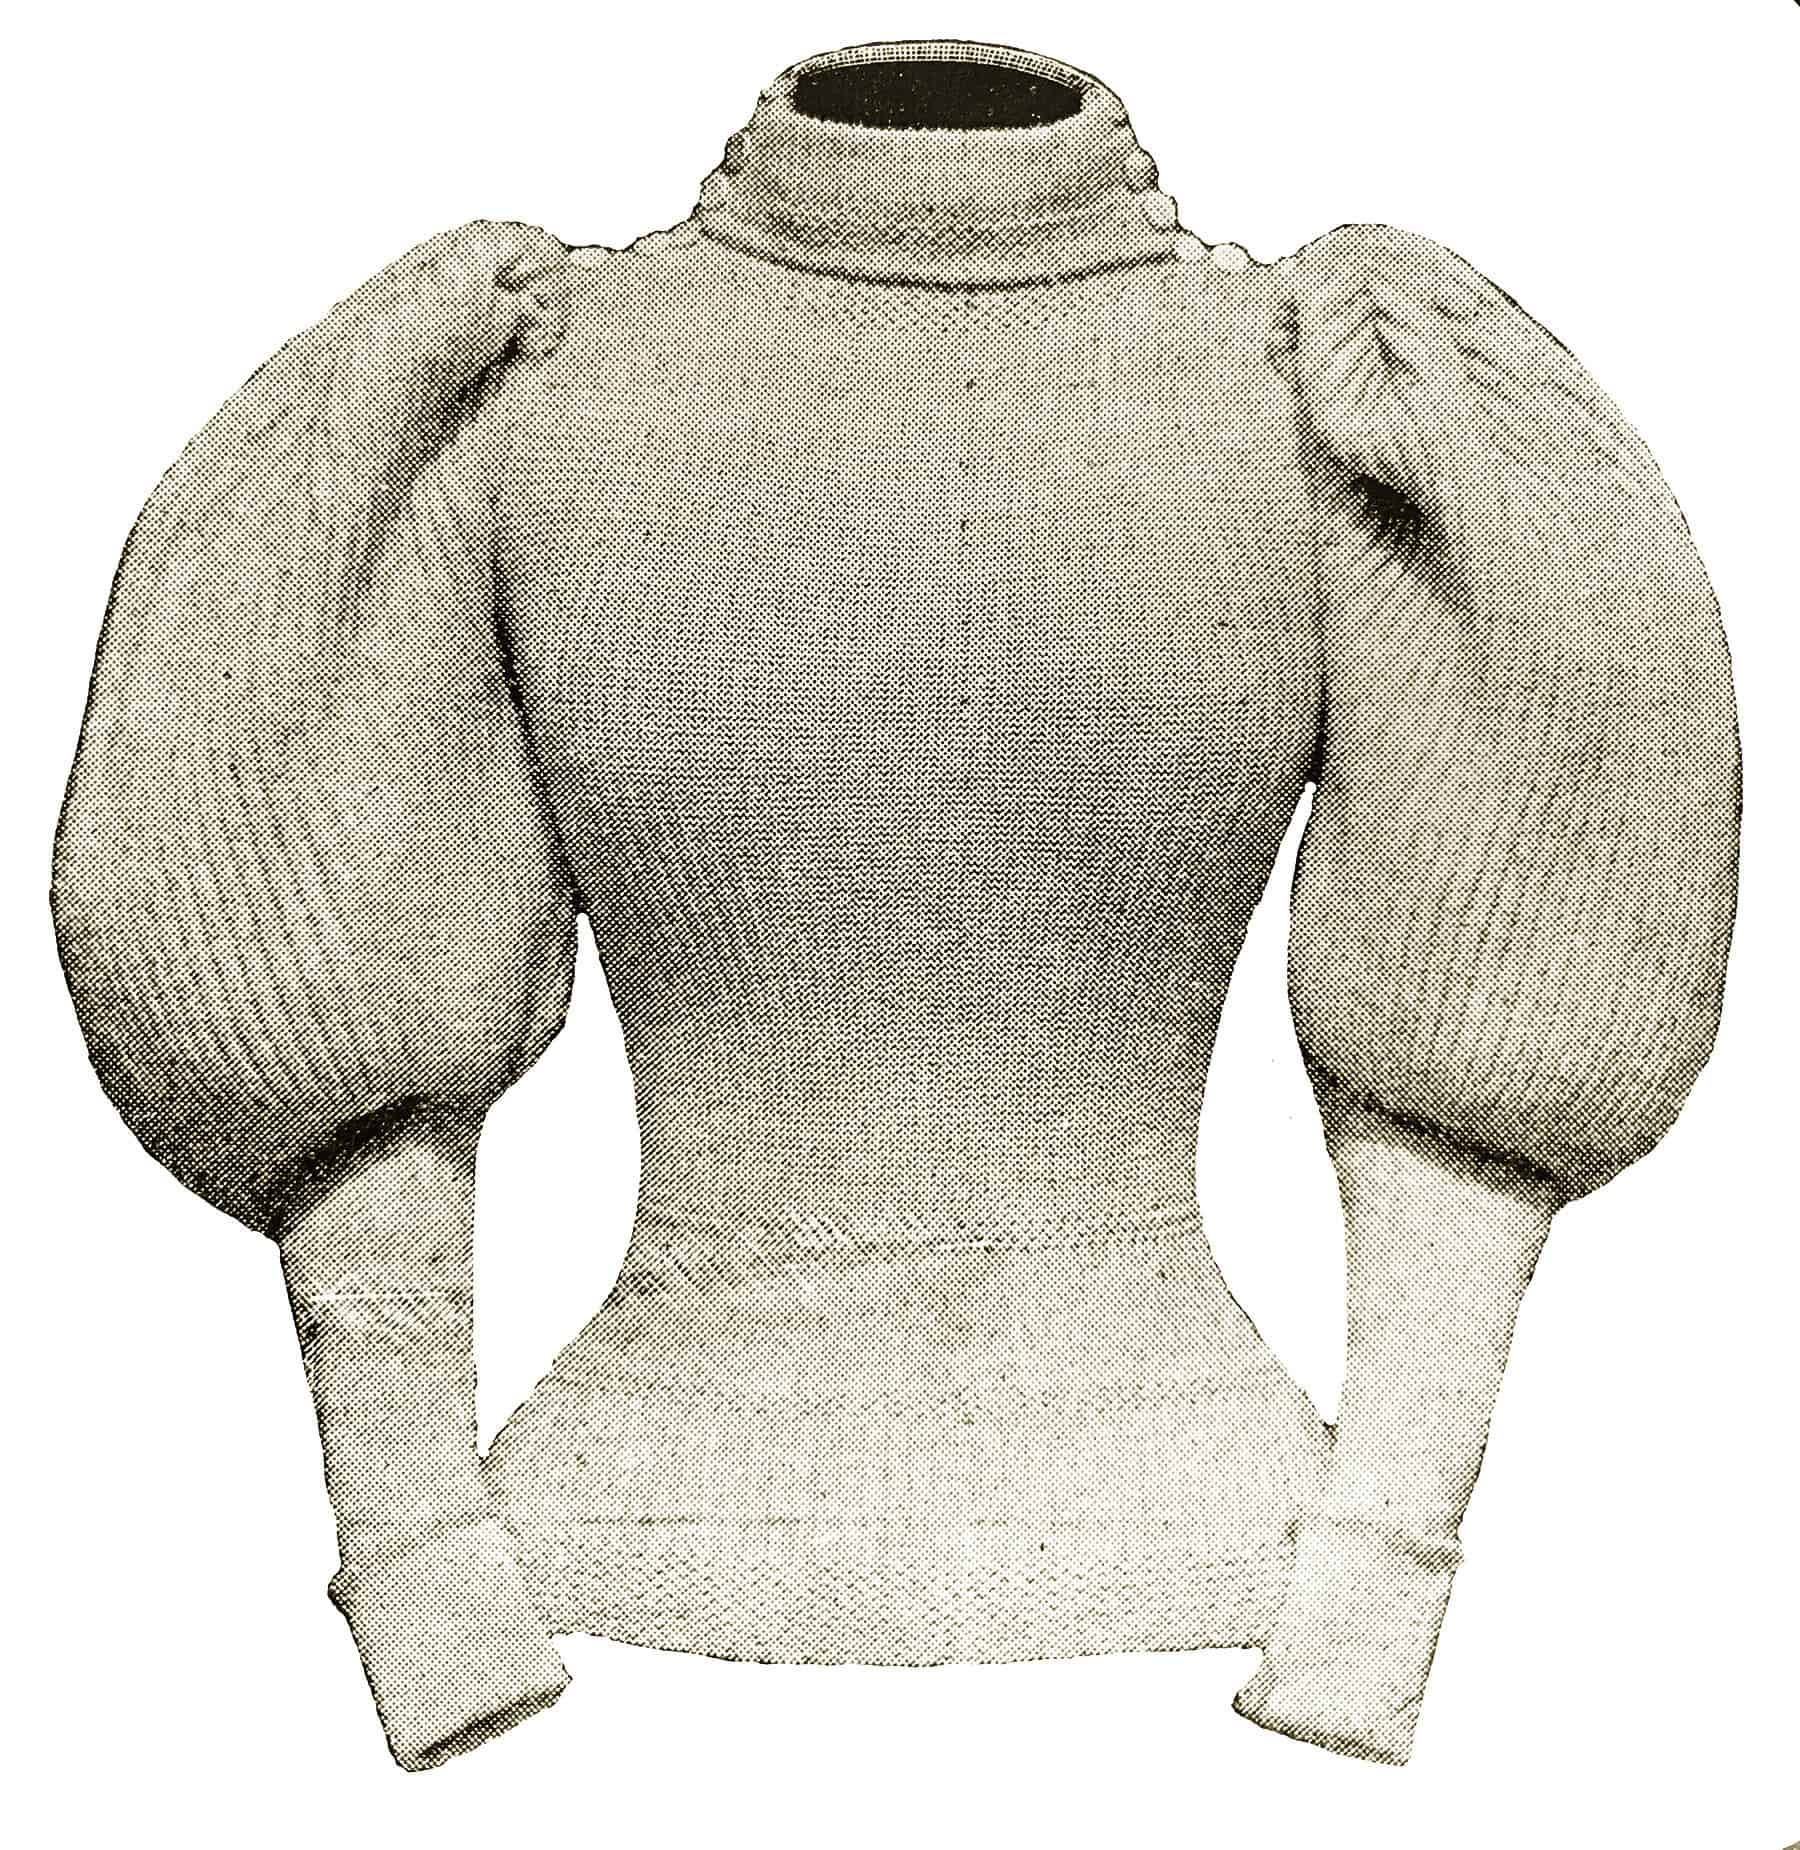 1897 leg-of-mutton sleeve sweater - original magazine image